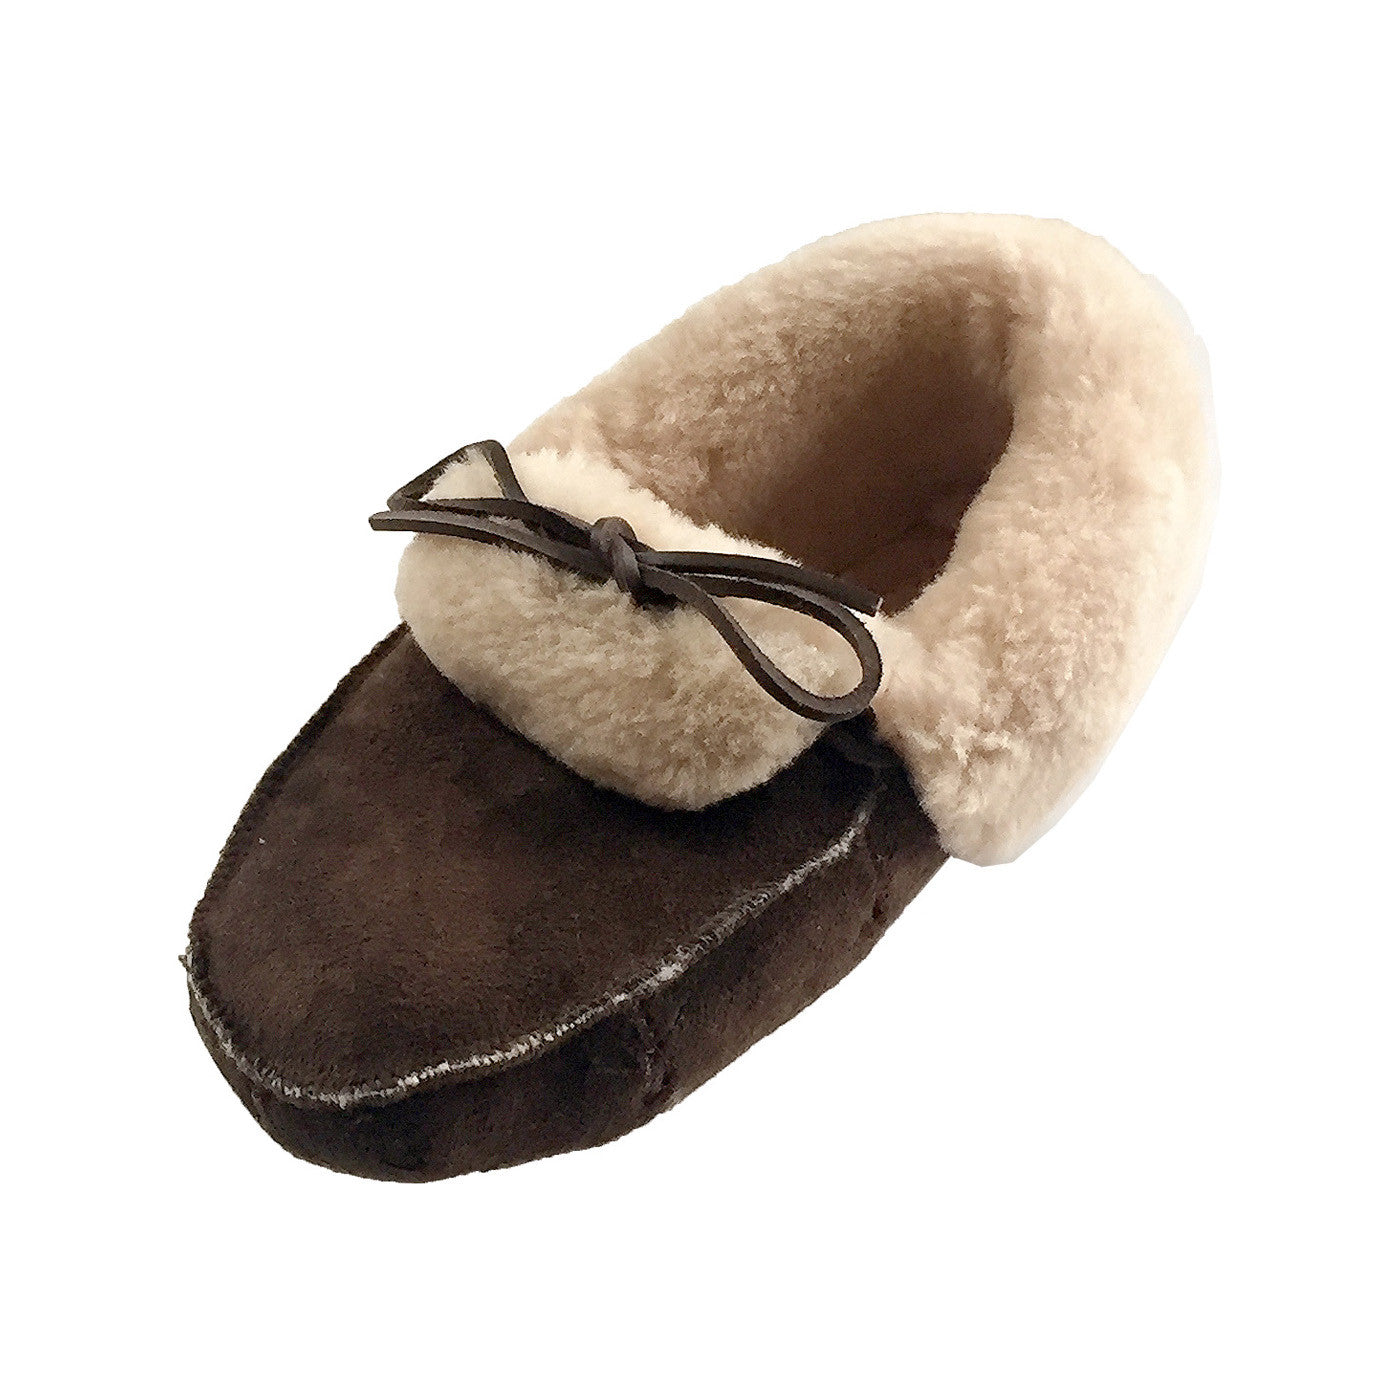 ebf3c8036b6 Men s Dark Brown Suede Real Sheepskin Lined Indoor Moccasin Slippers ...